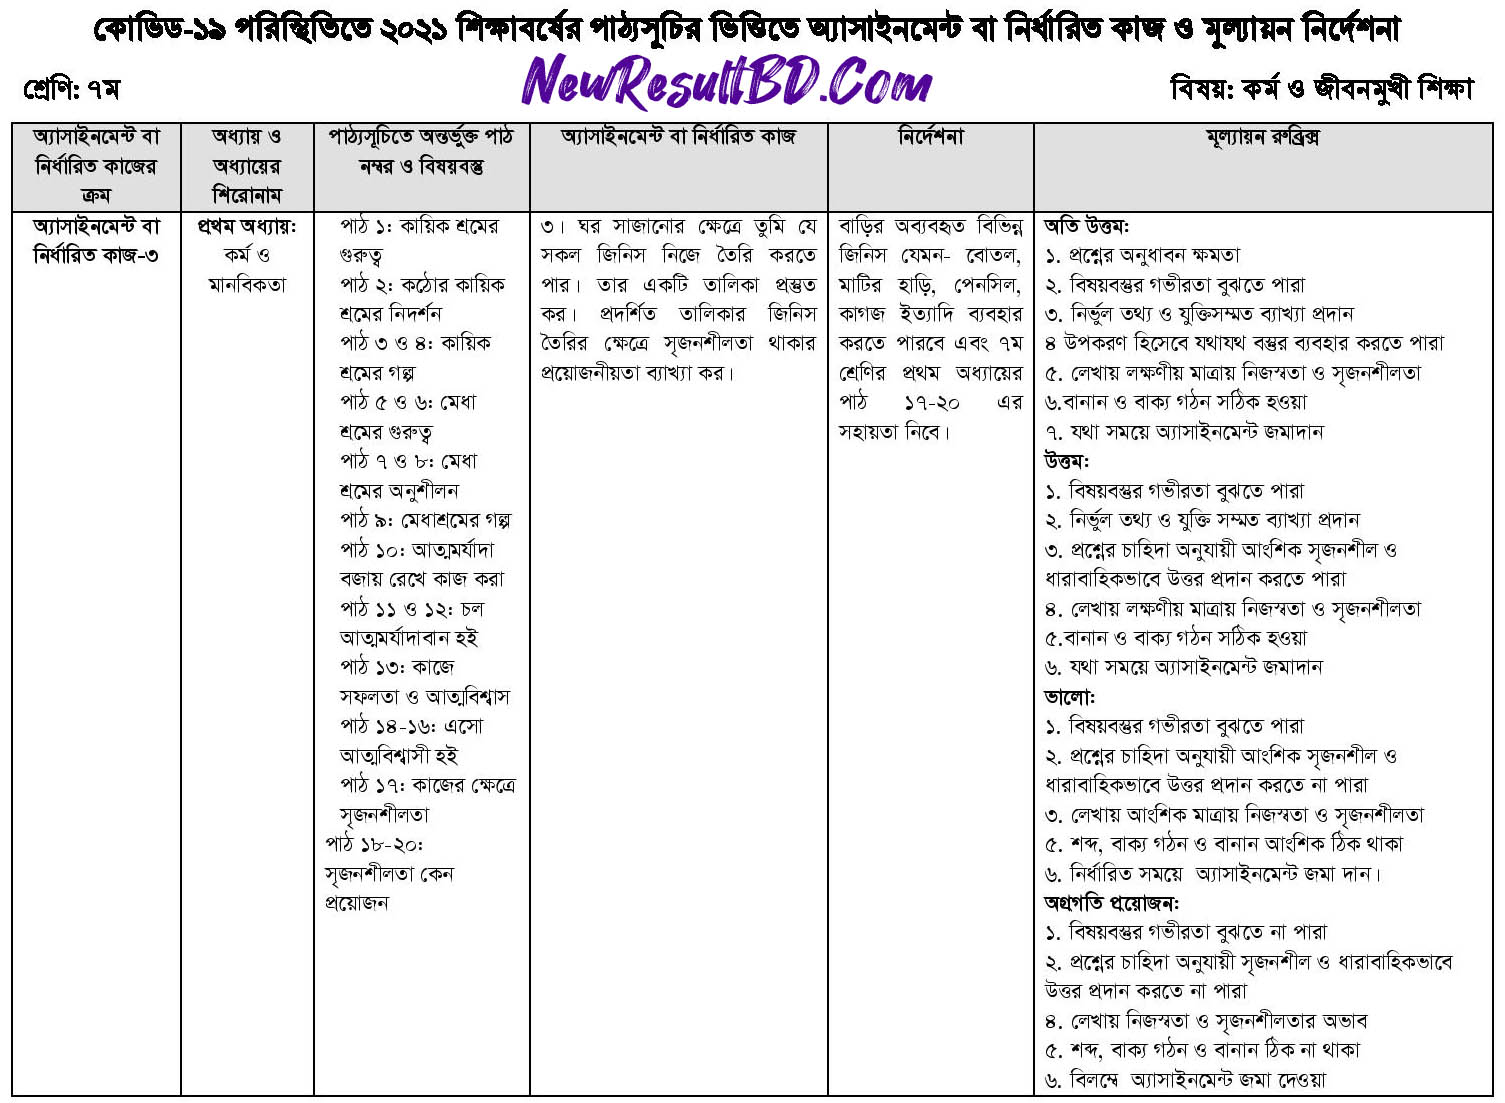 Class 7 Work and Life Oriented Education 15th Week Assignment 2021